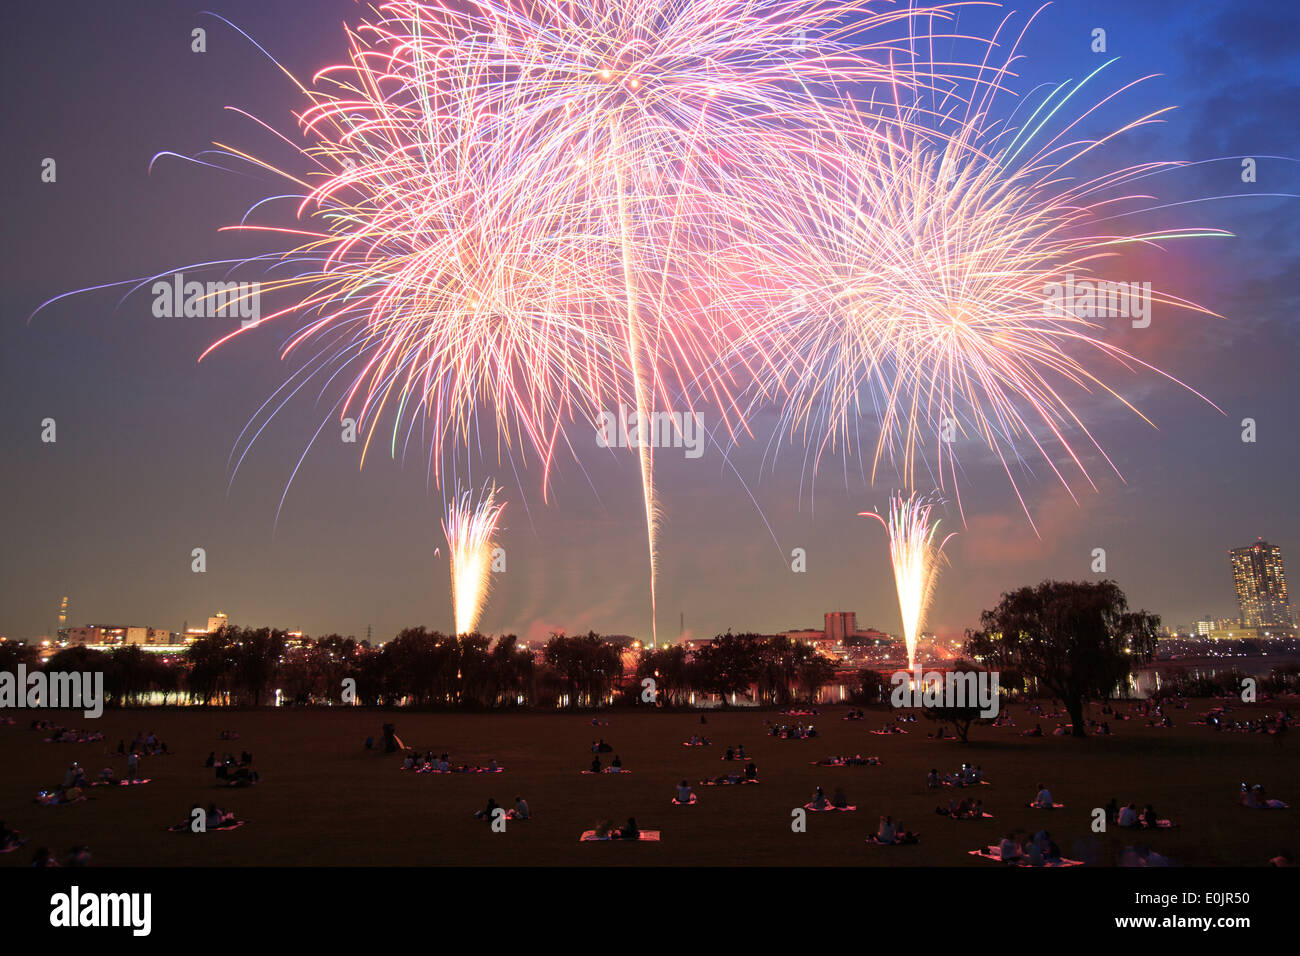 Fire works in Tokyo, Japan - Stock Image